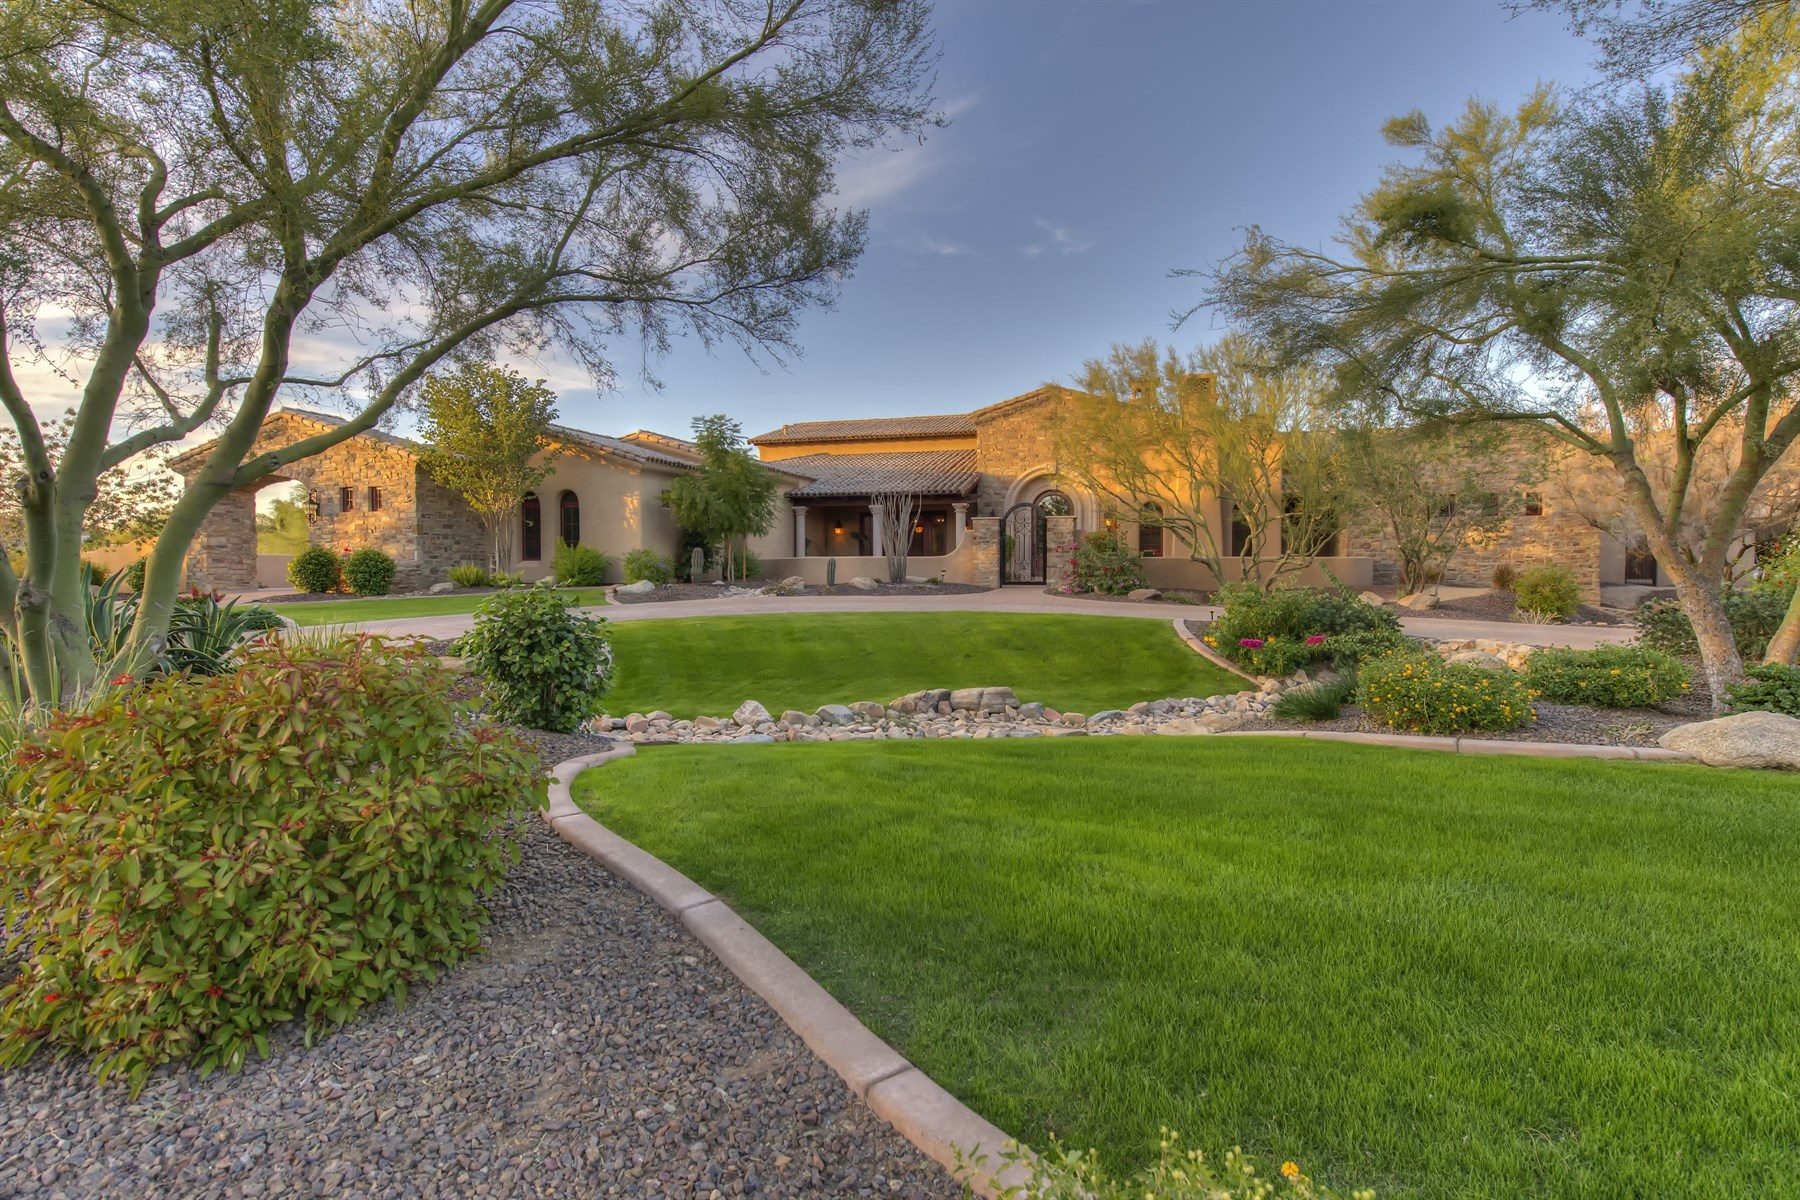 Property For Sale at Stunning Scottsdale Luxury Home In The Perfect Cactus Corridor Location